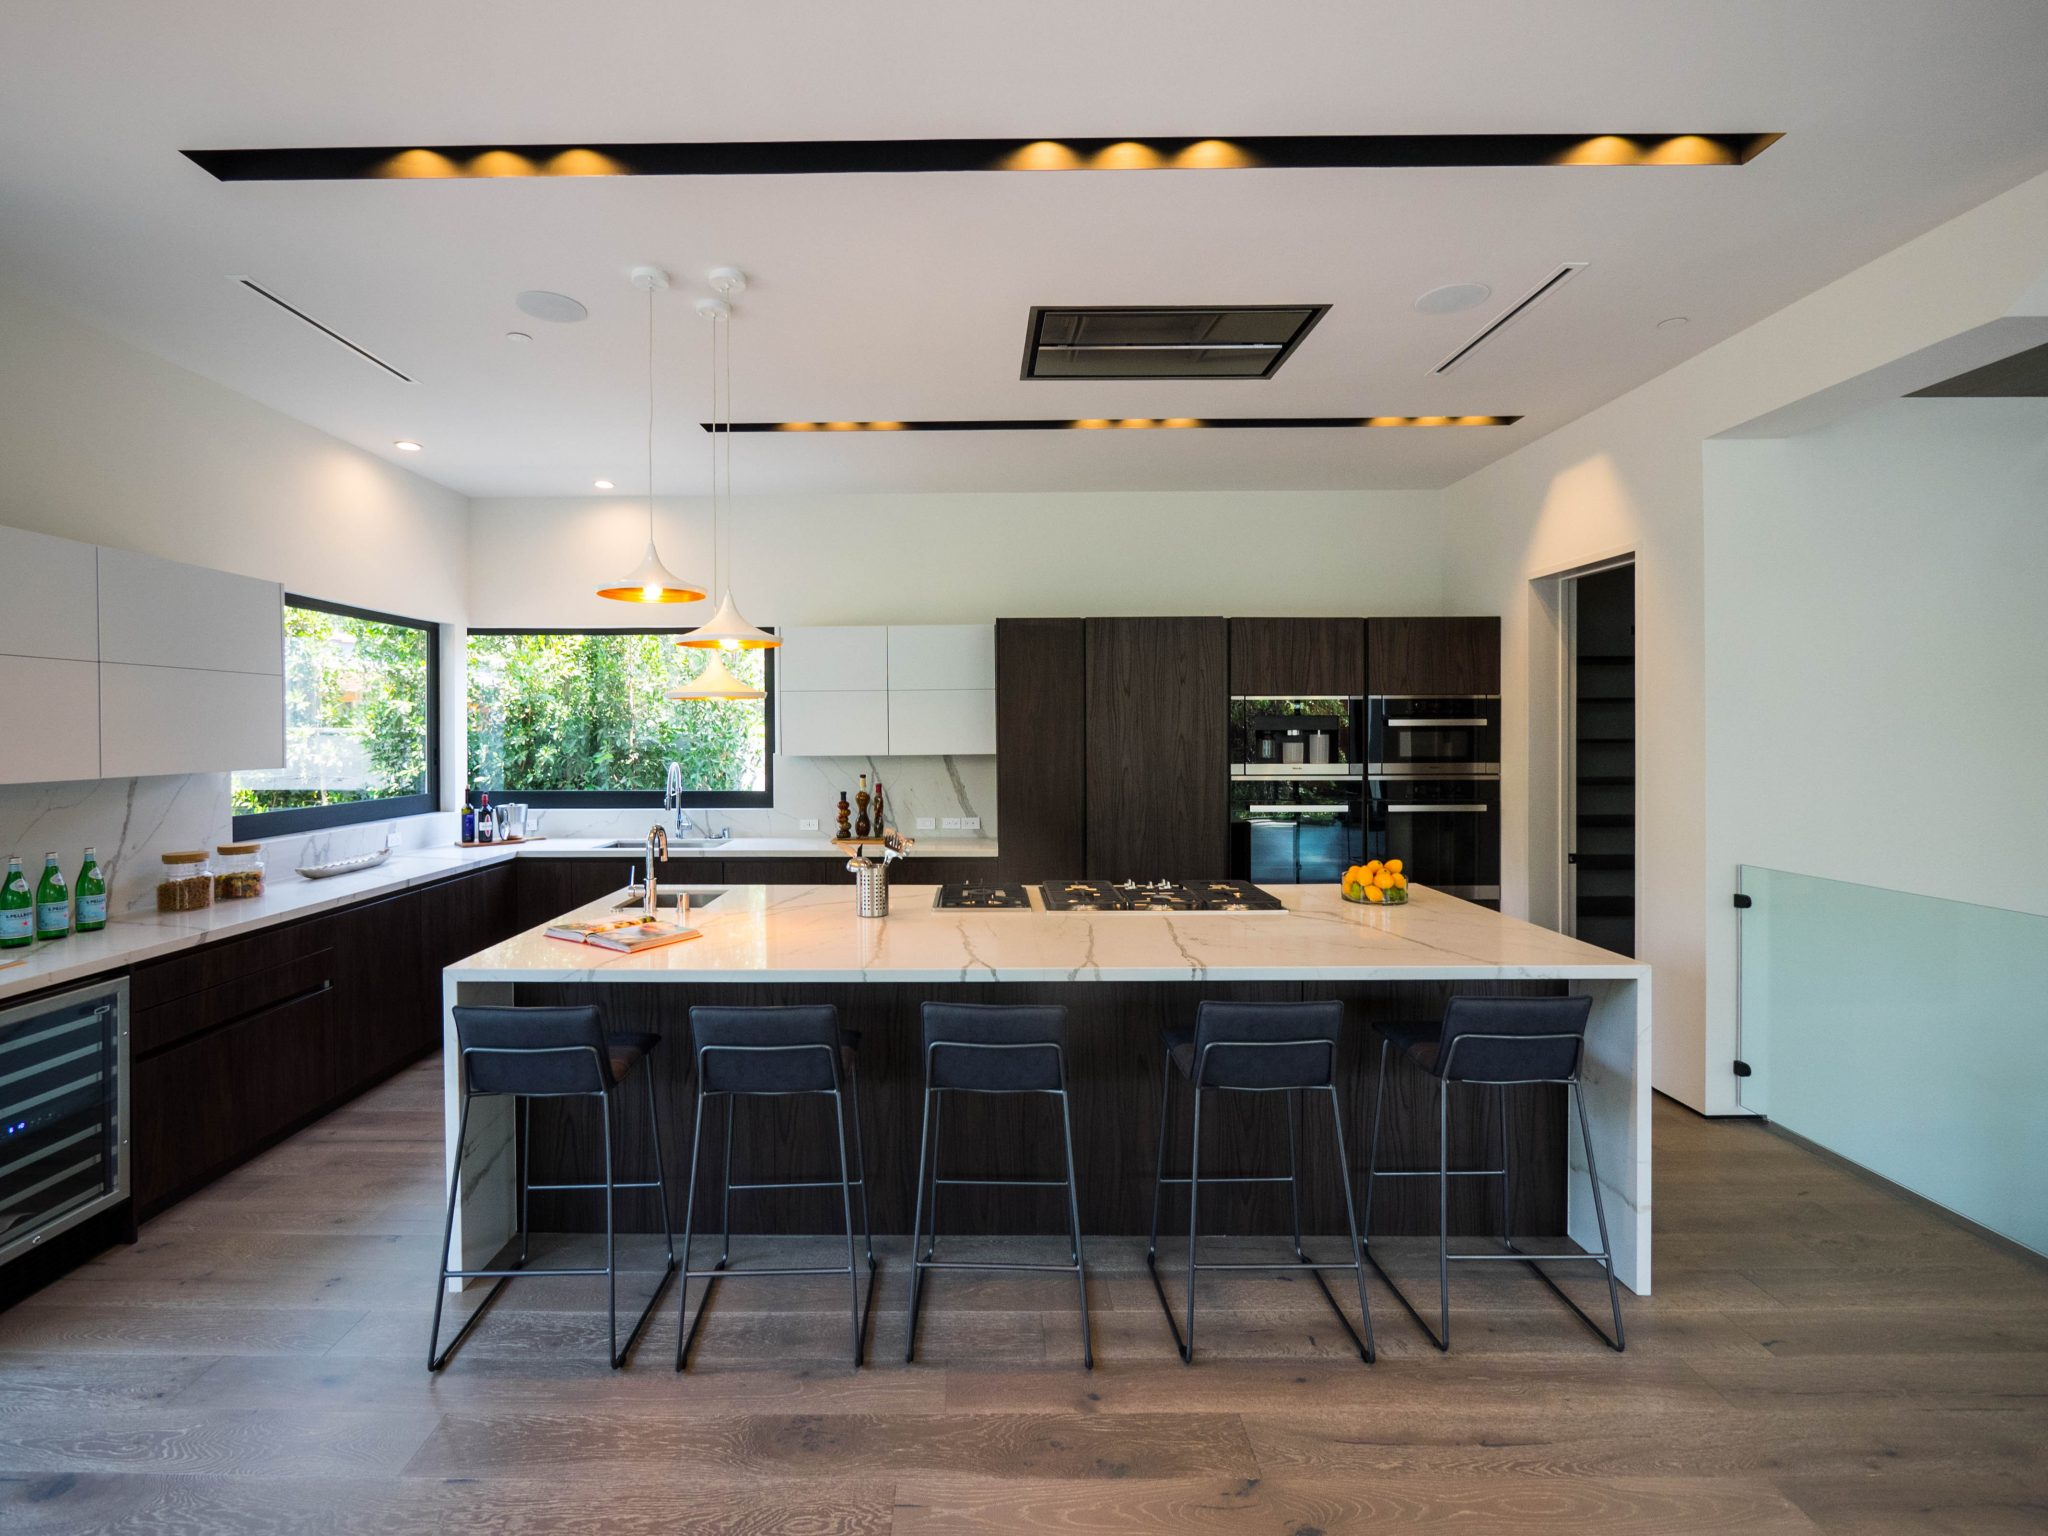 Luxury Miami Kitchen Design Lononno Concepts